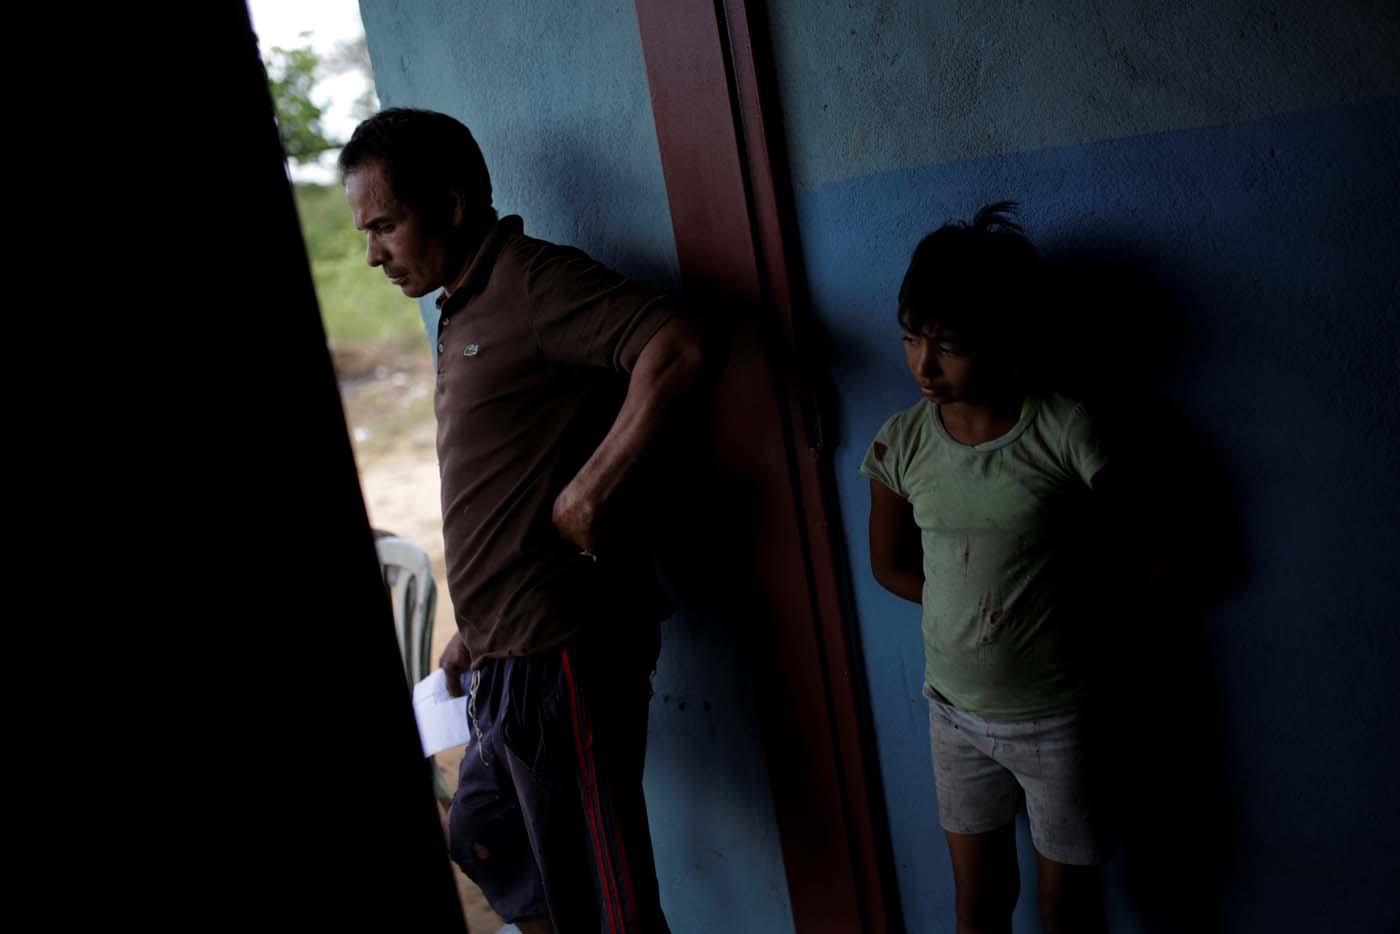 Tulio Medina (L), father of Eliannys Vivas, who died from diphtheria, stands next to one of his daughters at the entrance of their home in Pariaguan, Venezuela January 26, 2017. Picture taken January 26, 2017. REUTERS/Marco Bello